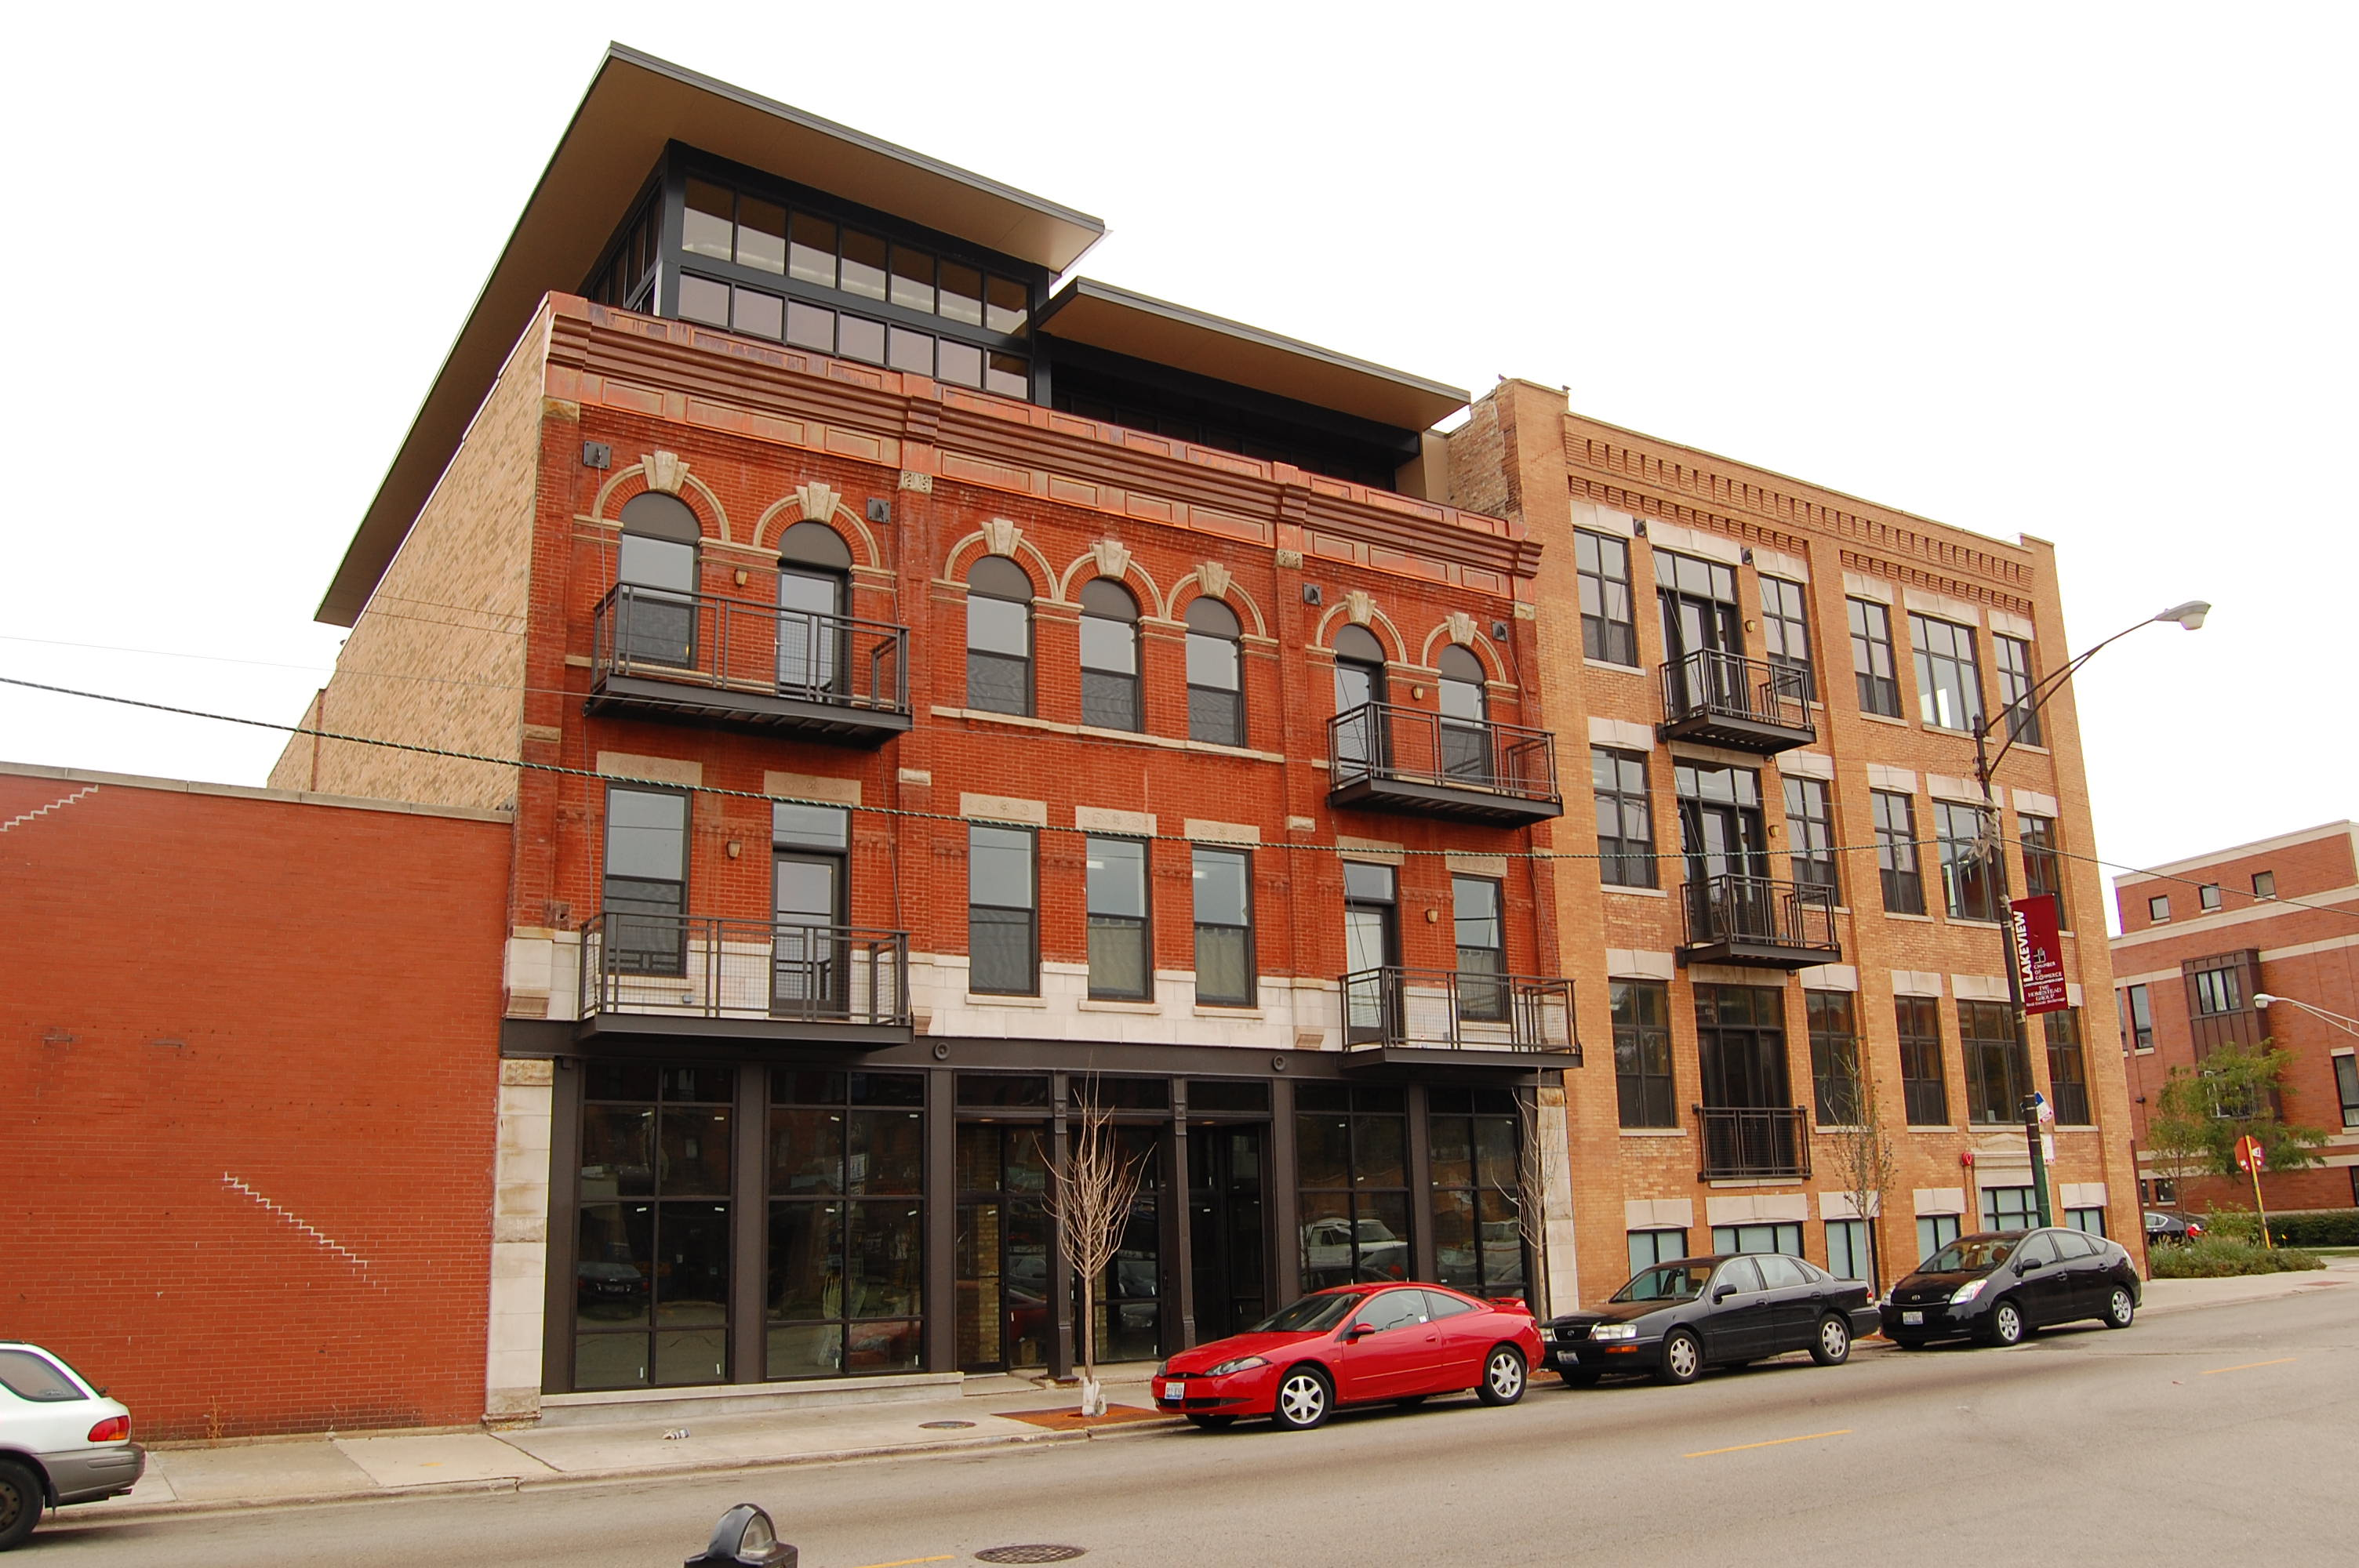 3133 Lofts, 3133 N Lakewood Ave, Chicago